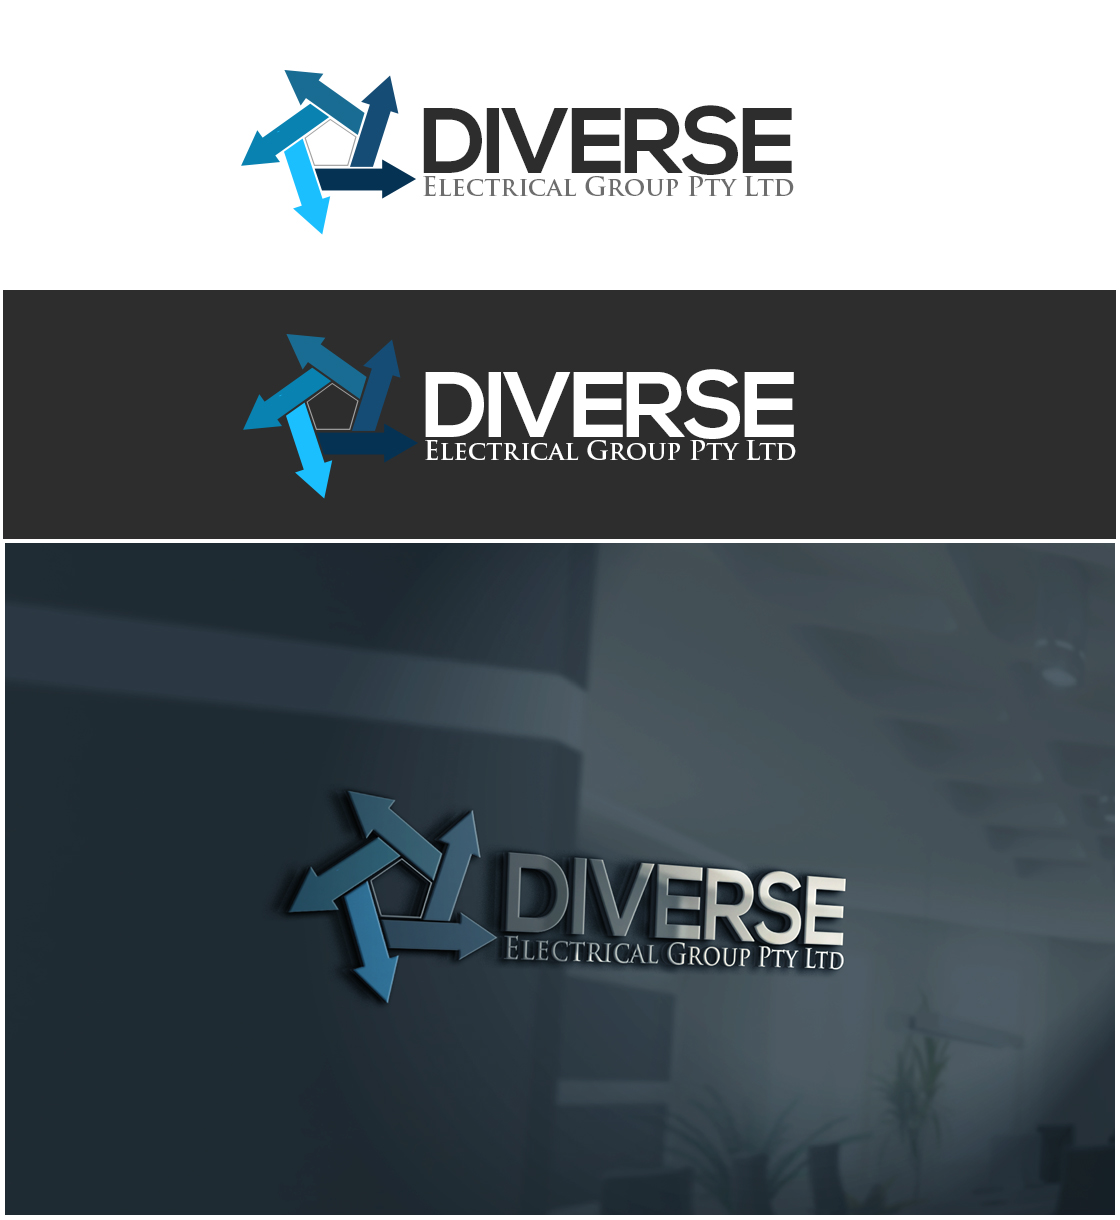 Ernst m nnlich electrical logo design for diverse for Outer space design group pty ltd